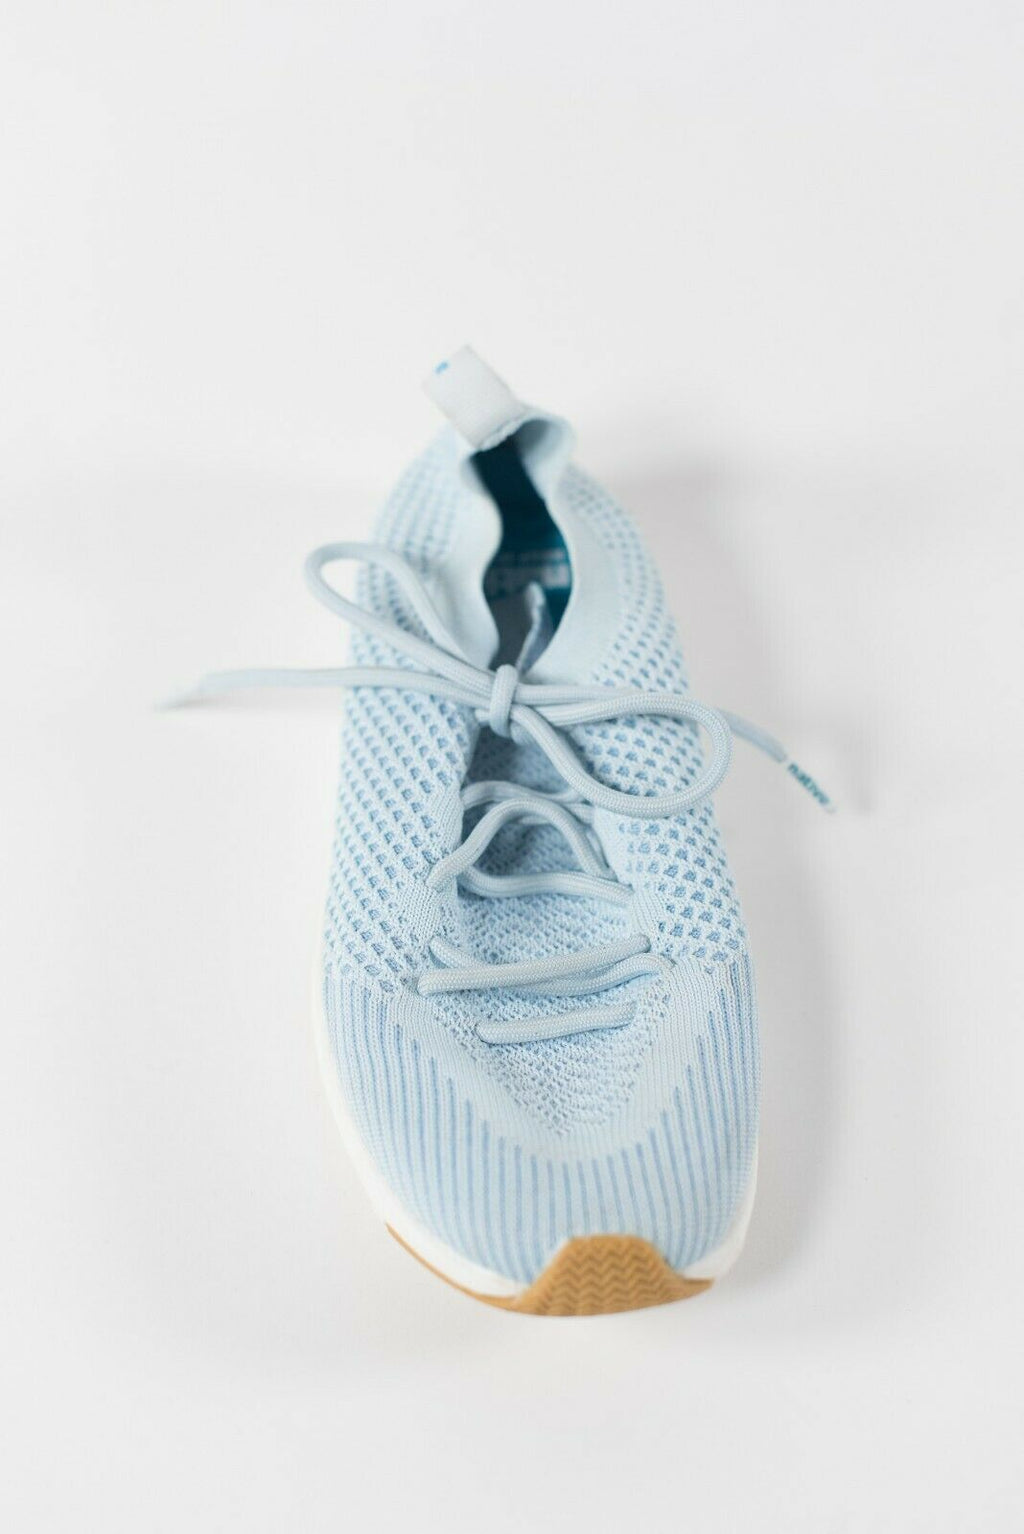 Native Women's Size 6.5 Light Blue Sneakers Lace Up Knit Trainer Running Shoes